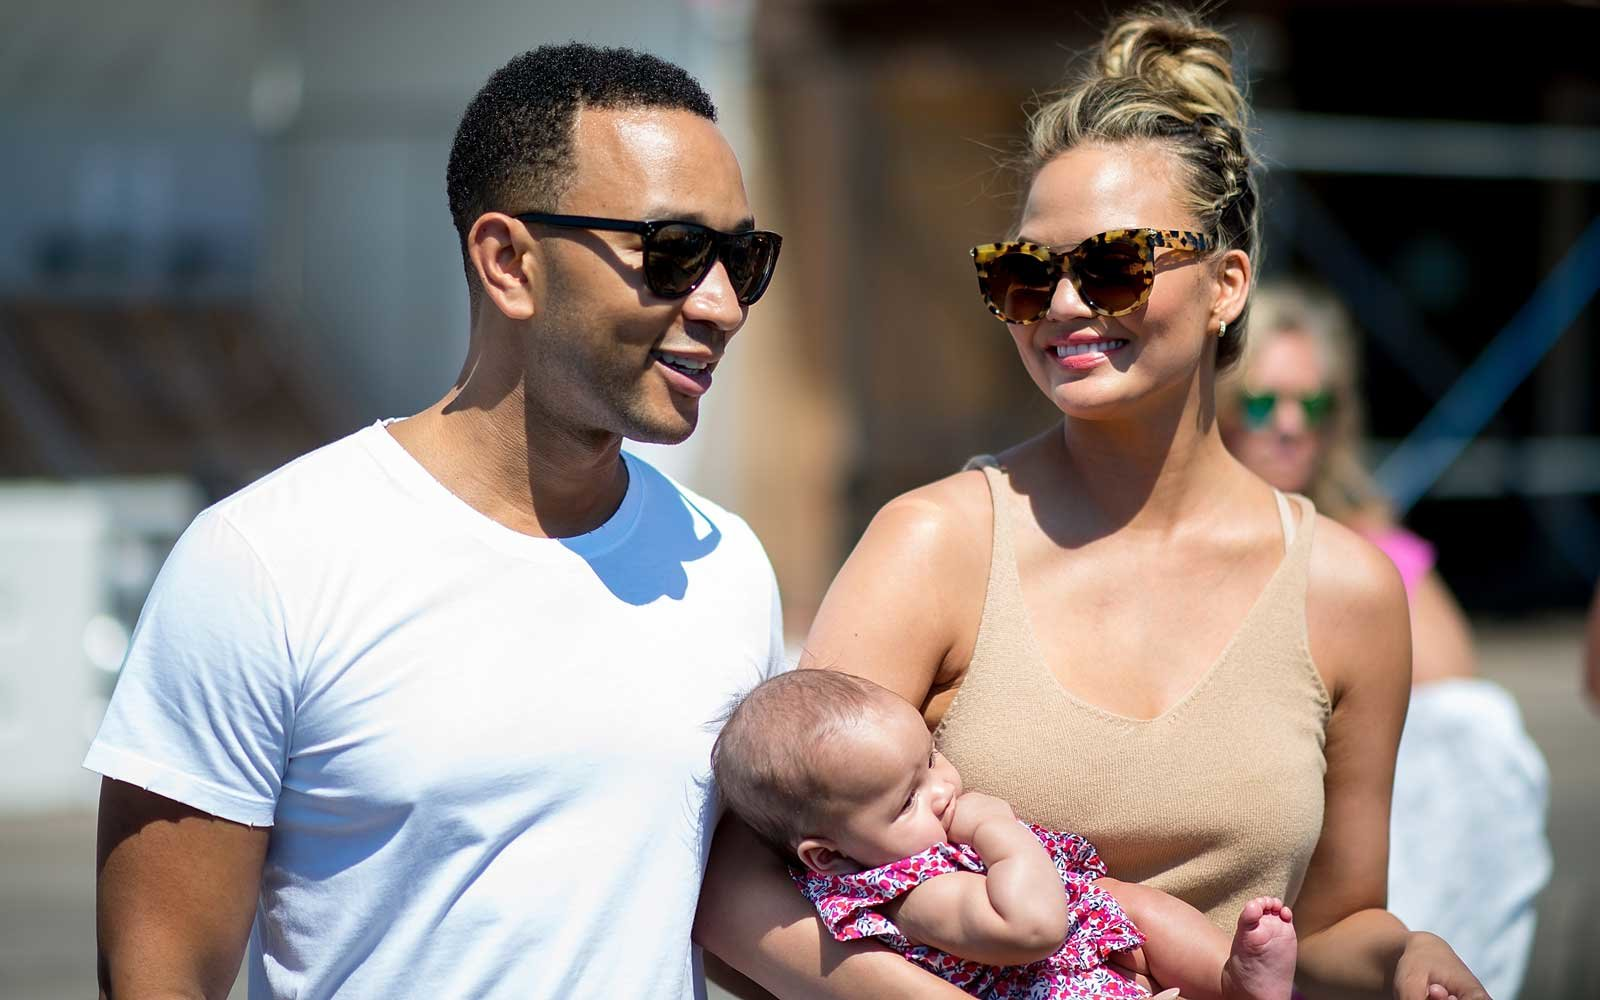 Chrissy Teigen Gives New Mom Tips